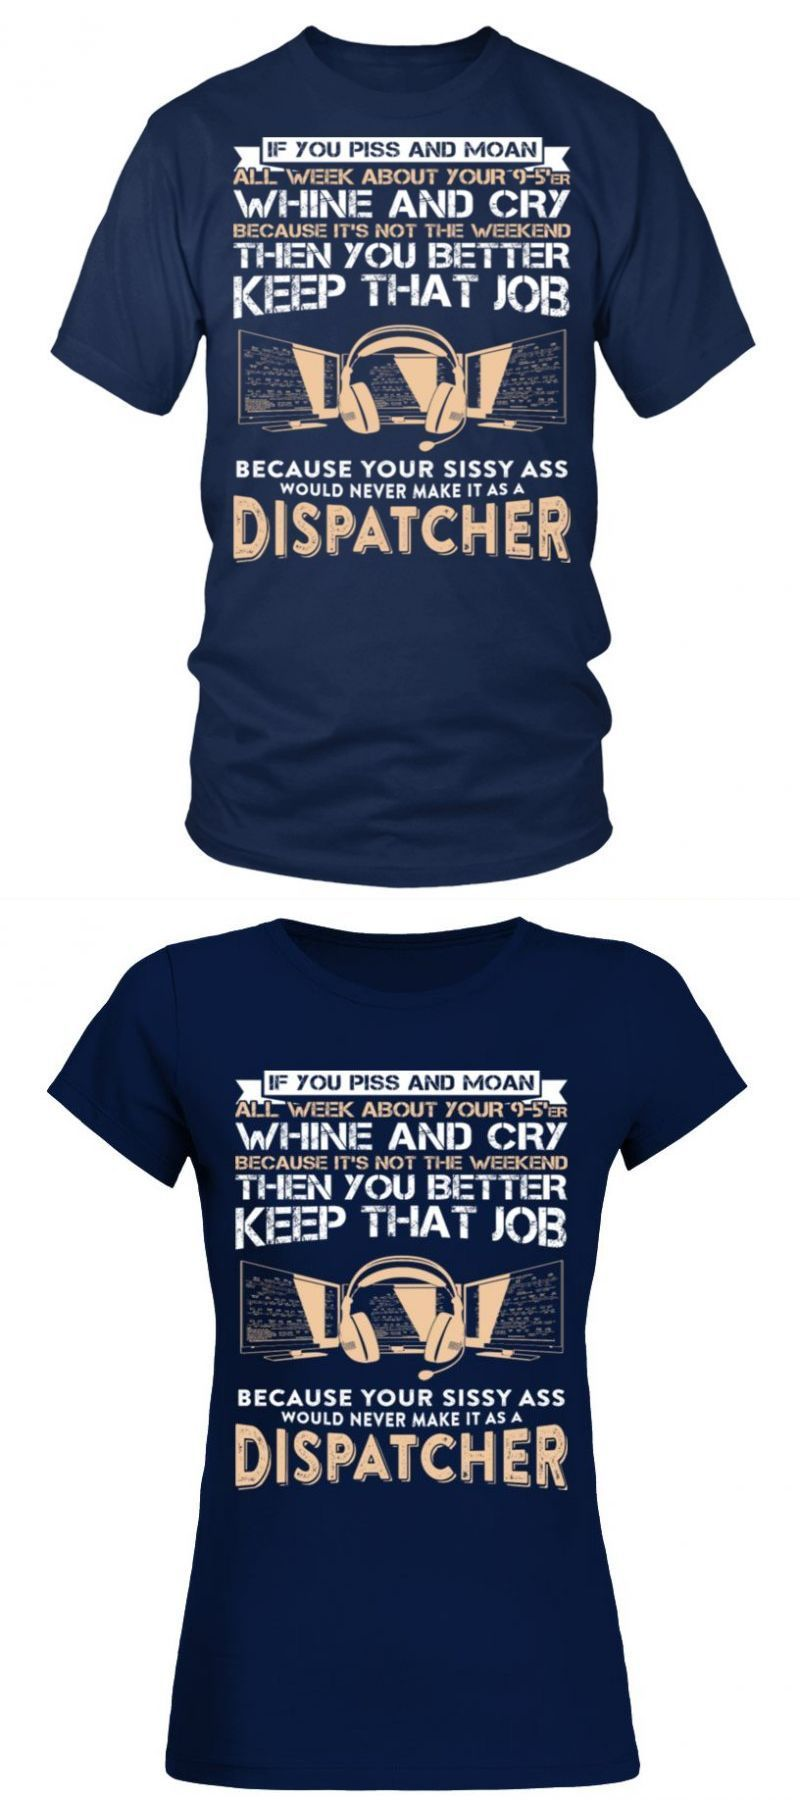 73702ed3 Dispatcher dispatcher your sissy ass wou boston police t shirt #dispatcher # your #sissy